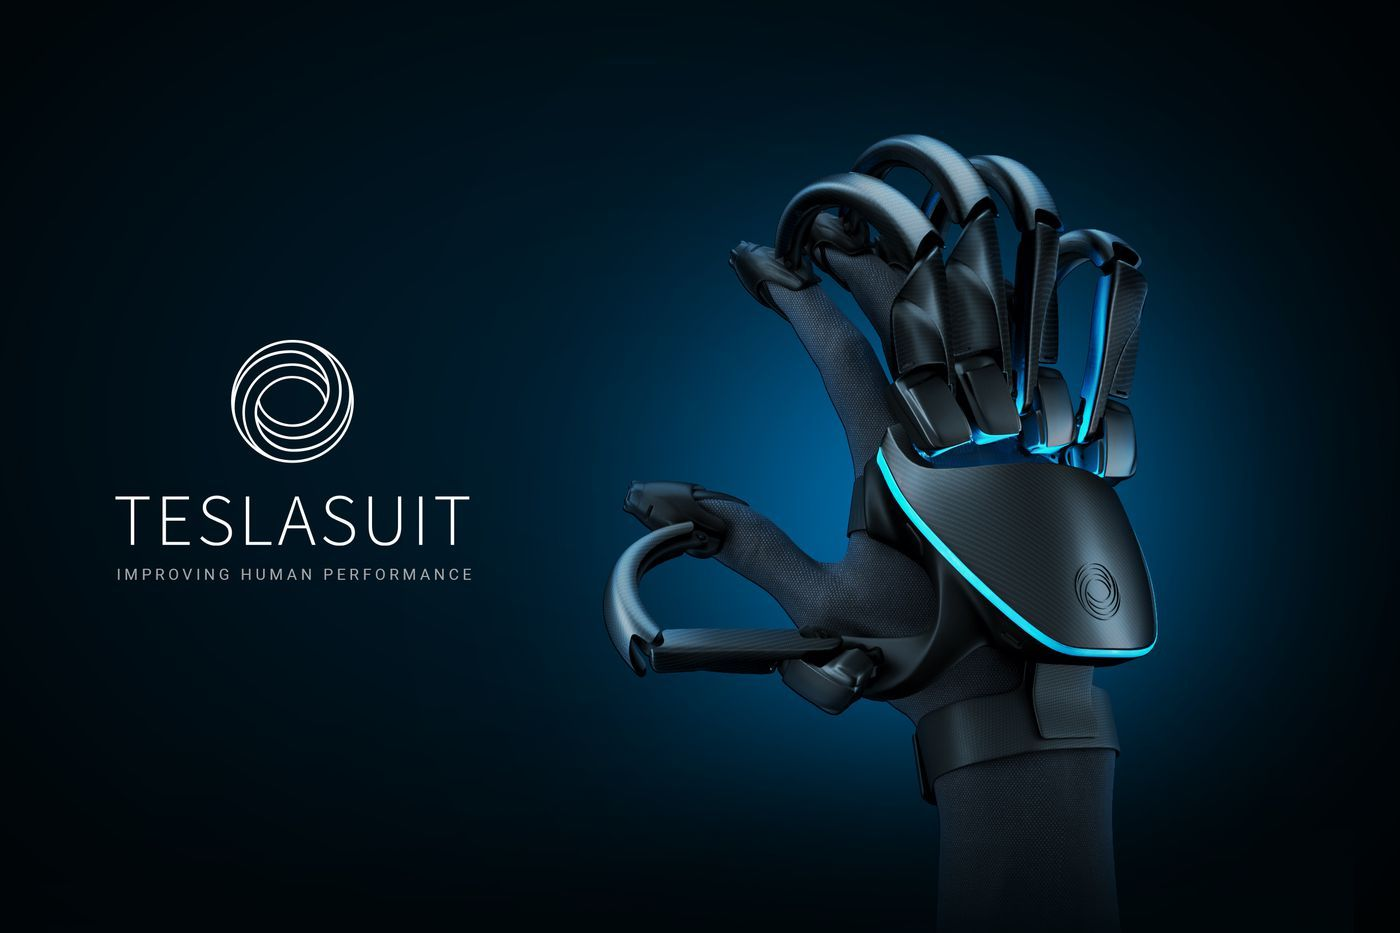 Teslasuit's new VR gloves let you feel virtual objects and